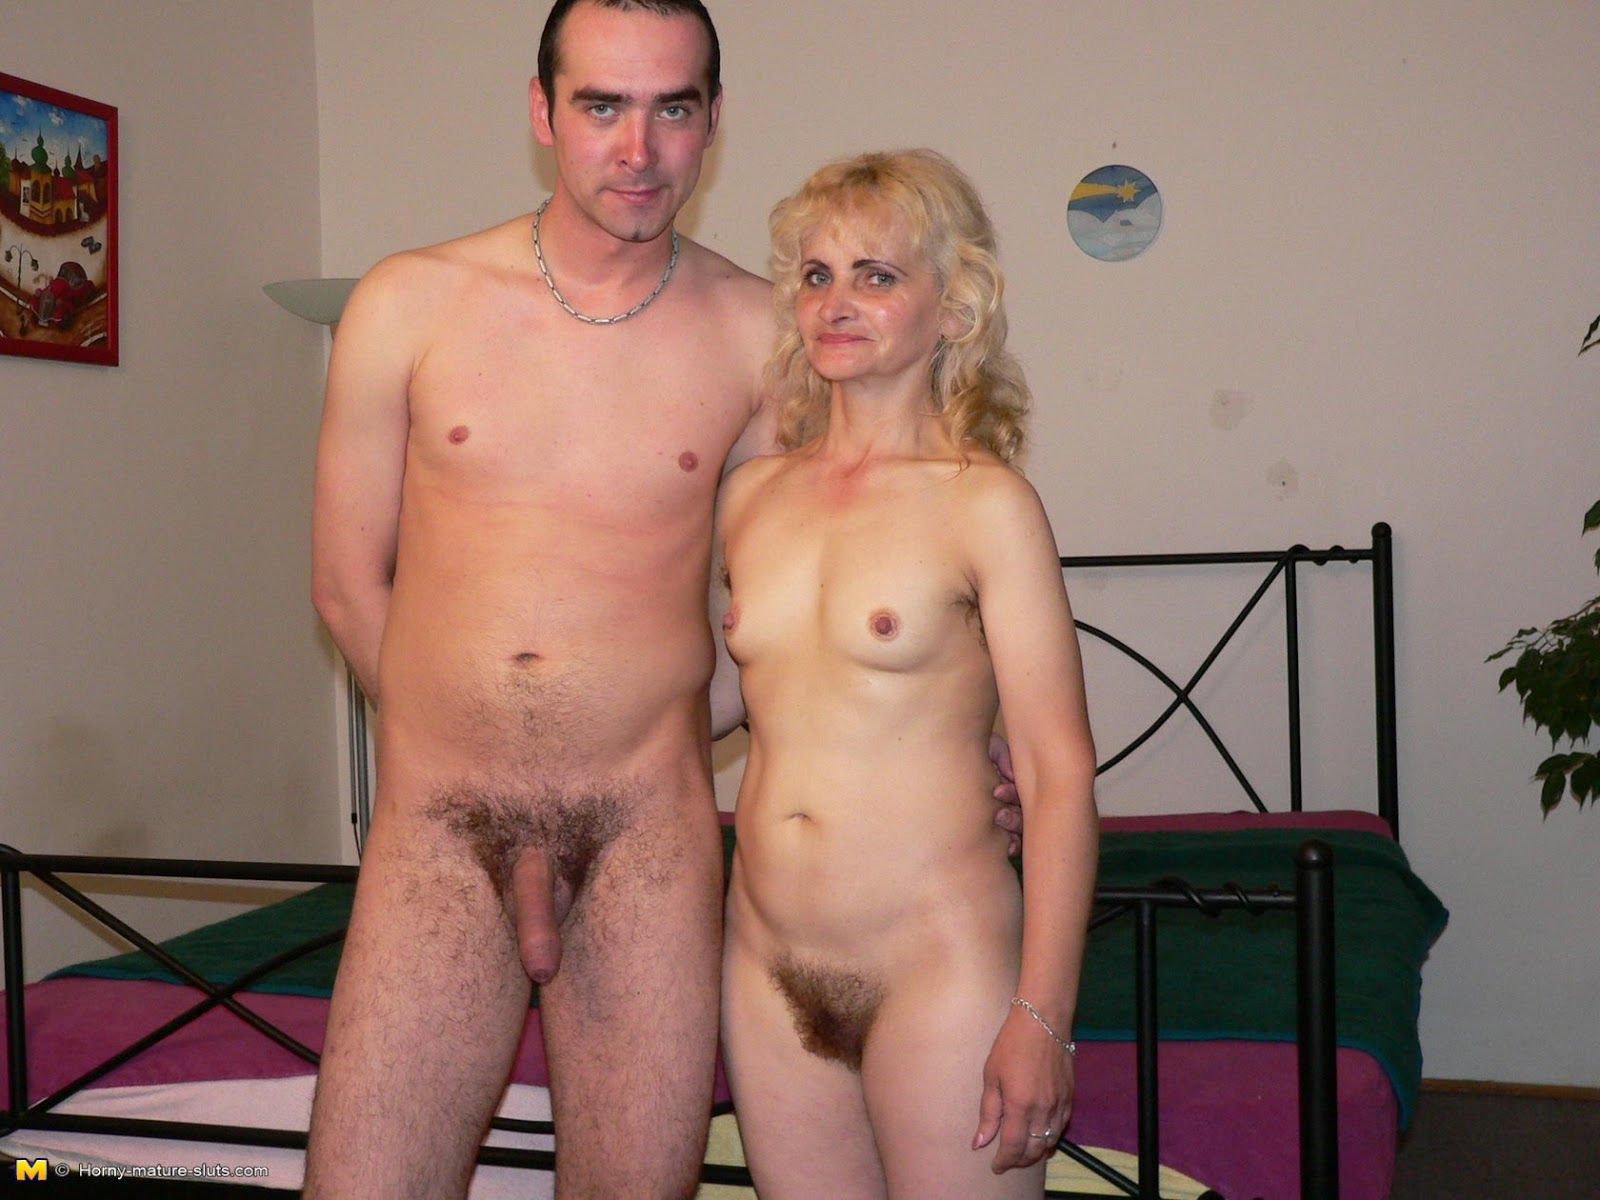 Sexo picd of nude male with female naked scene